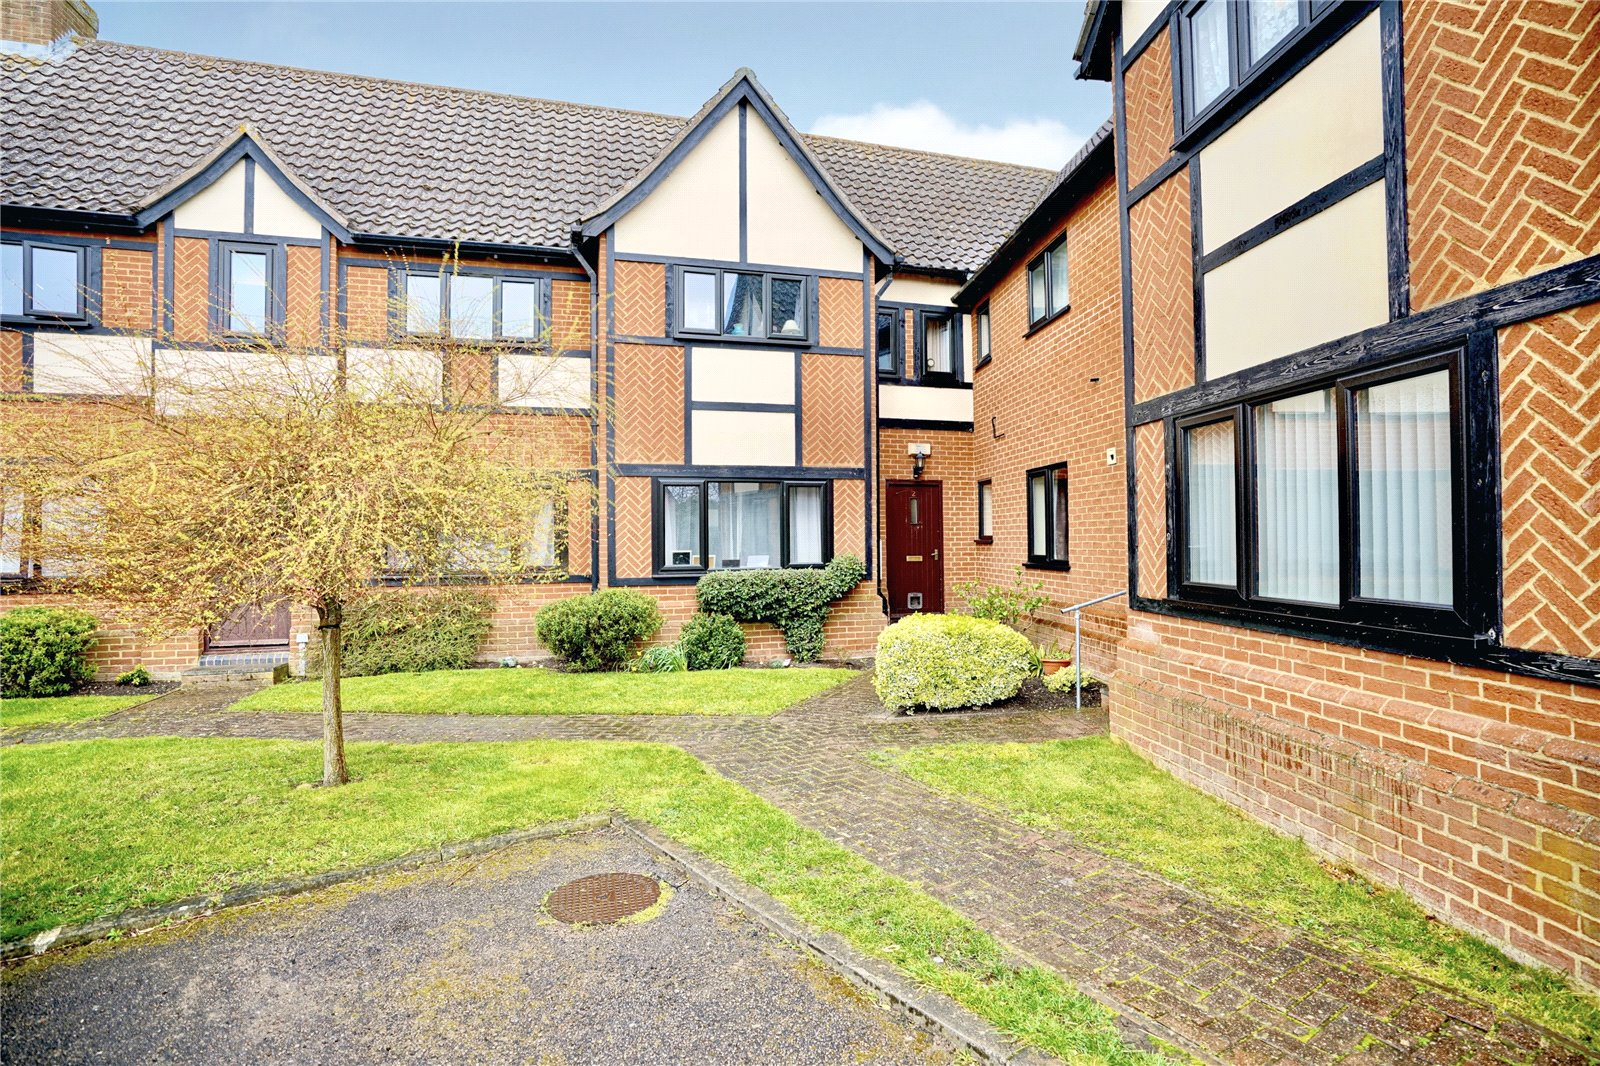 2 bed apartment for sale in Earith, PE28 3PP, PE28